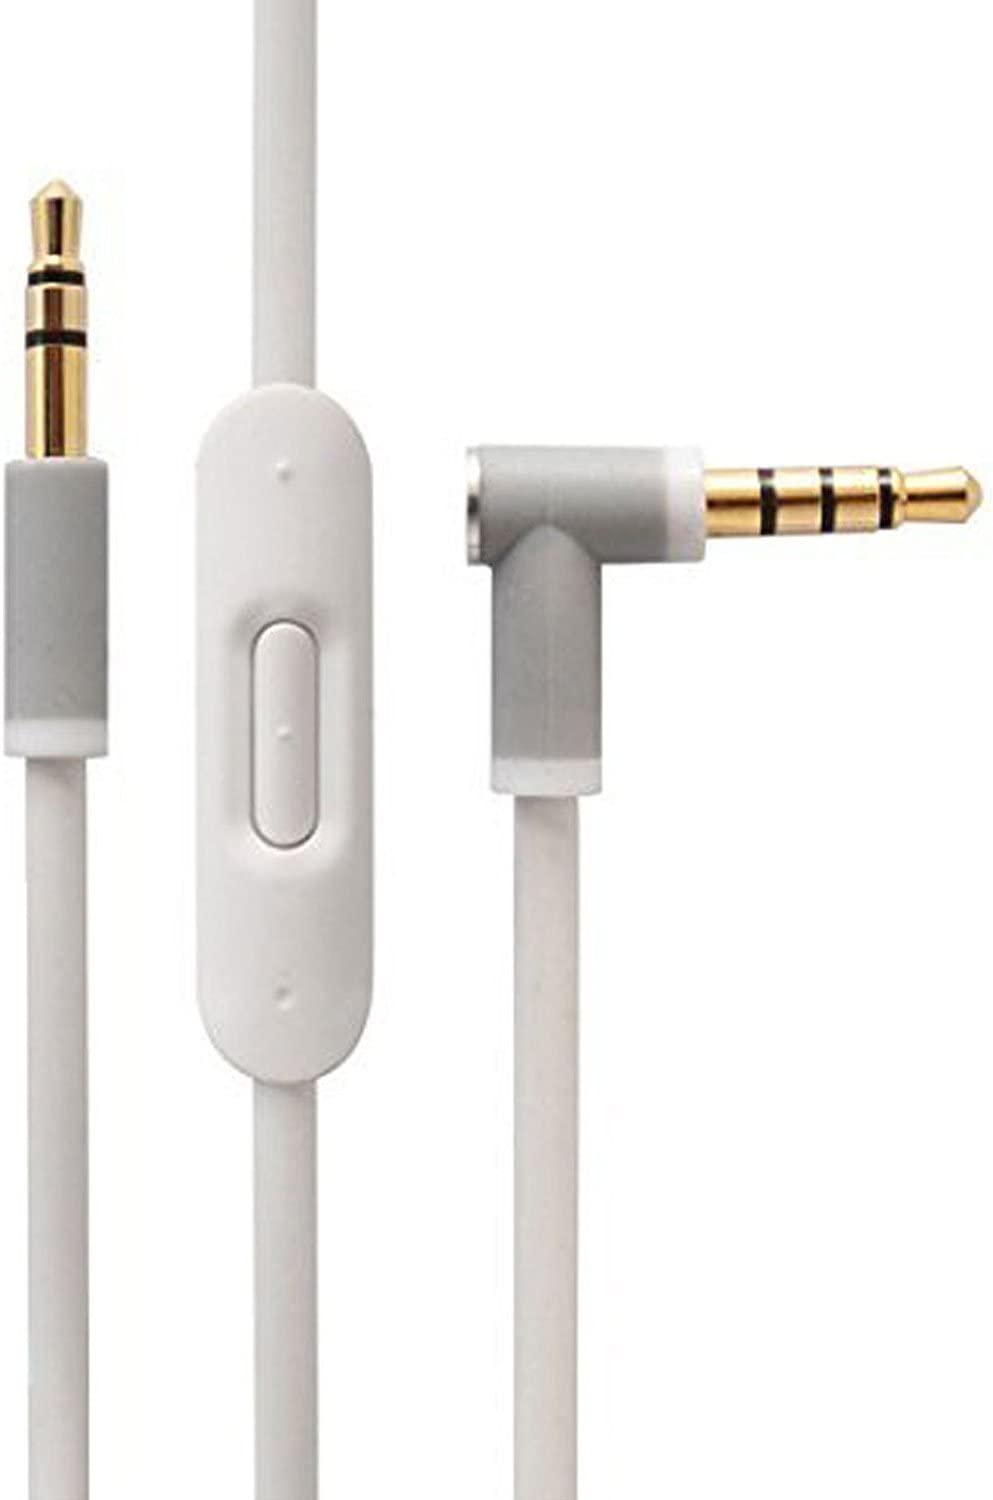 Replacement Audio Cable Cord Wire with in-line Microphone and Control for Beats by Dr Dre Headphones Solo/Studio/Pro/Detox/Wireless/Mixr/Executive/Pill(White)